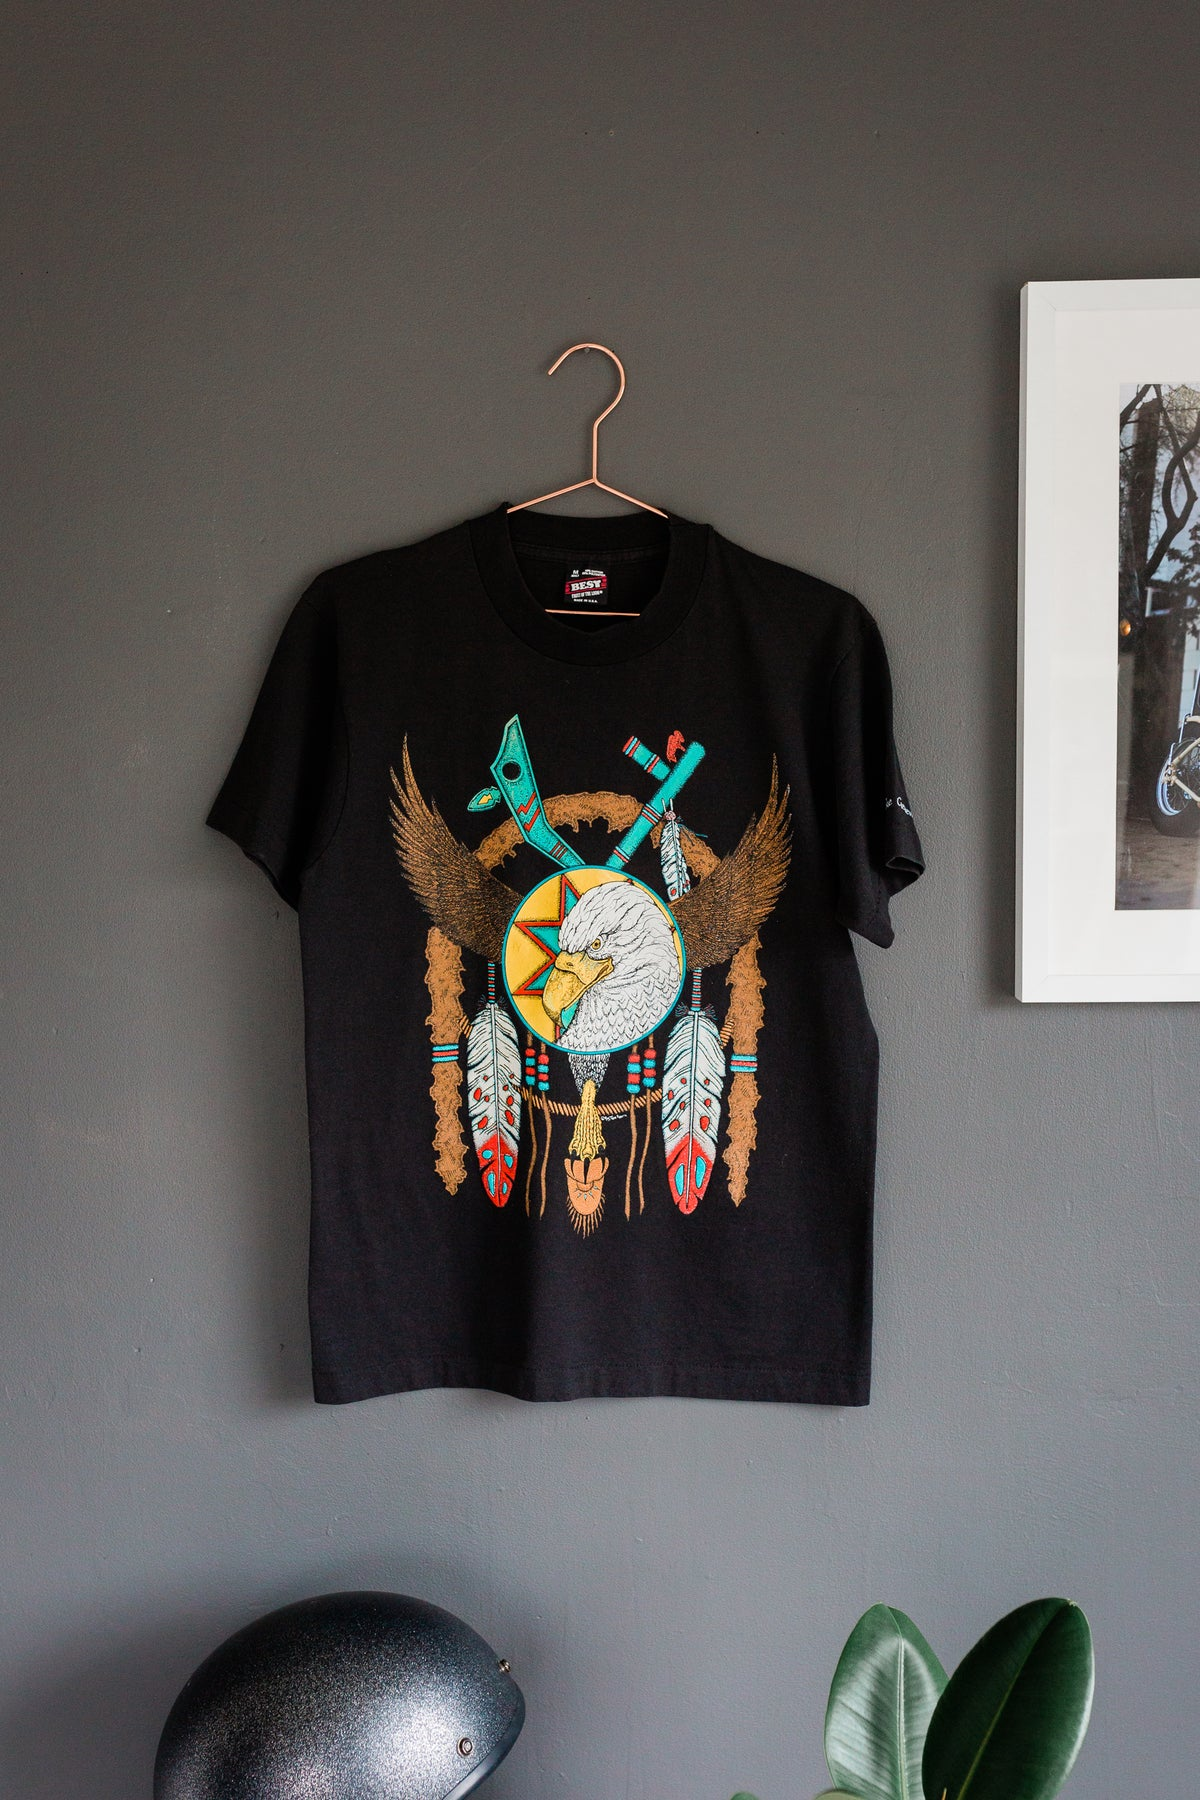 Image of Vintage 1980's 'Eagle VS Feathers' Tee